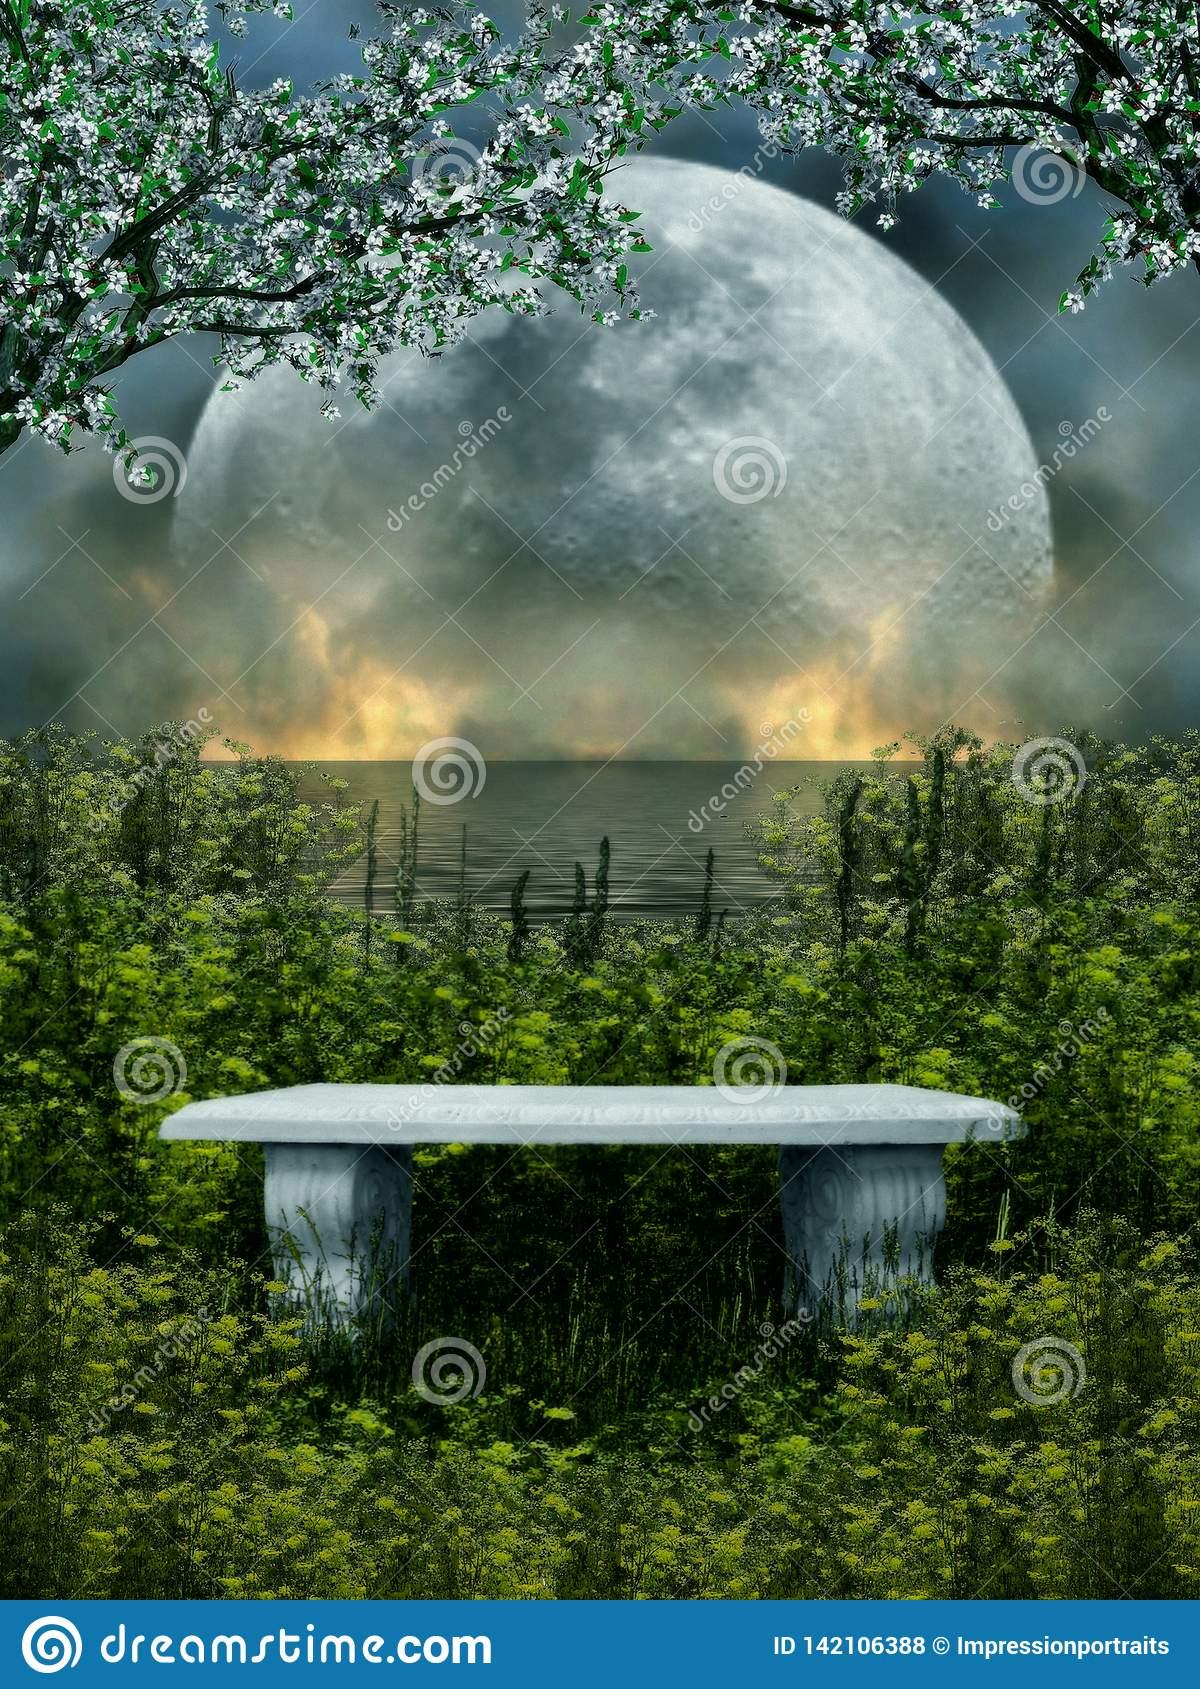 3D Illustration Of A Stone Seat Isolated With Nature And Moon In